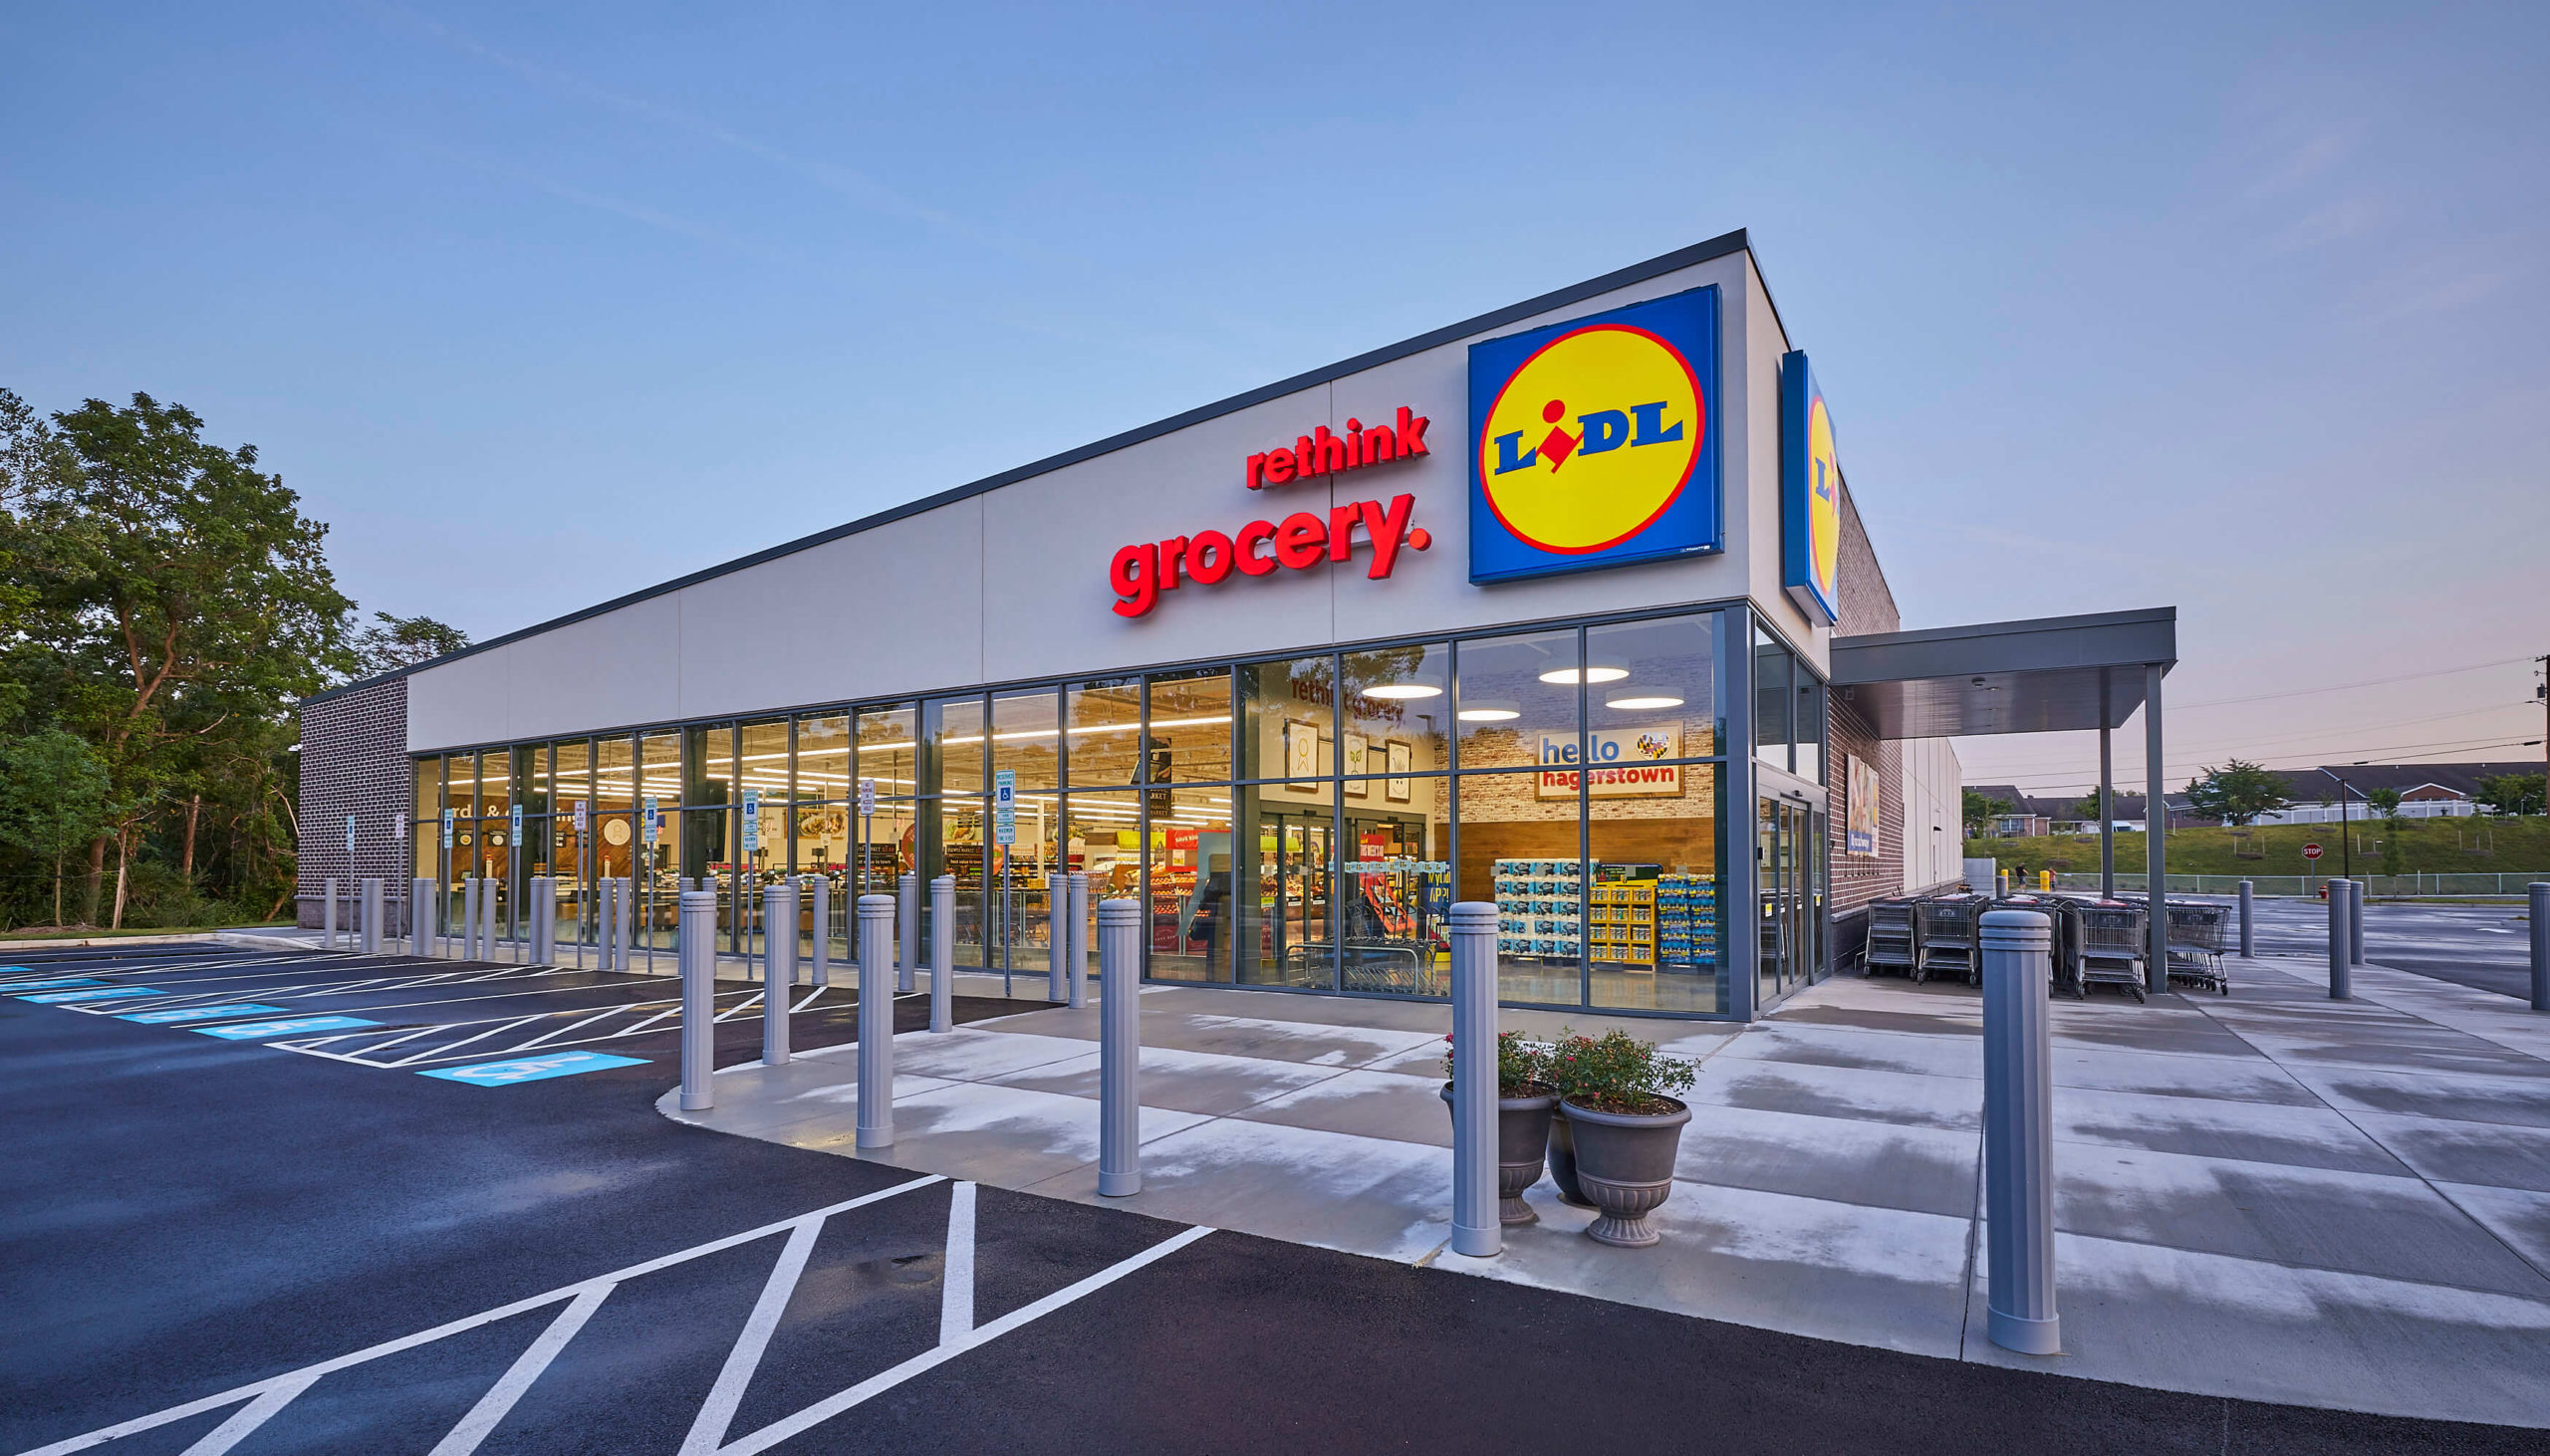 Lidl to hold grand opening event for new store in Royersford on Sept. 4